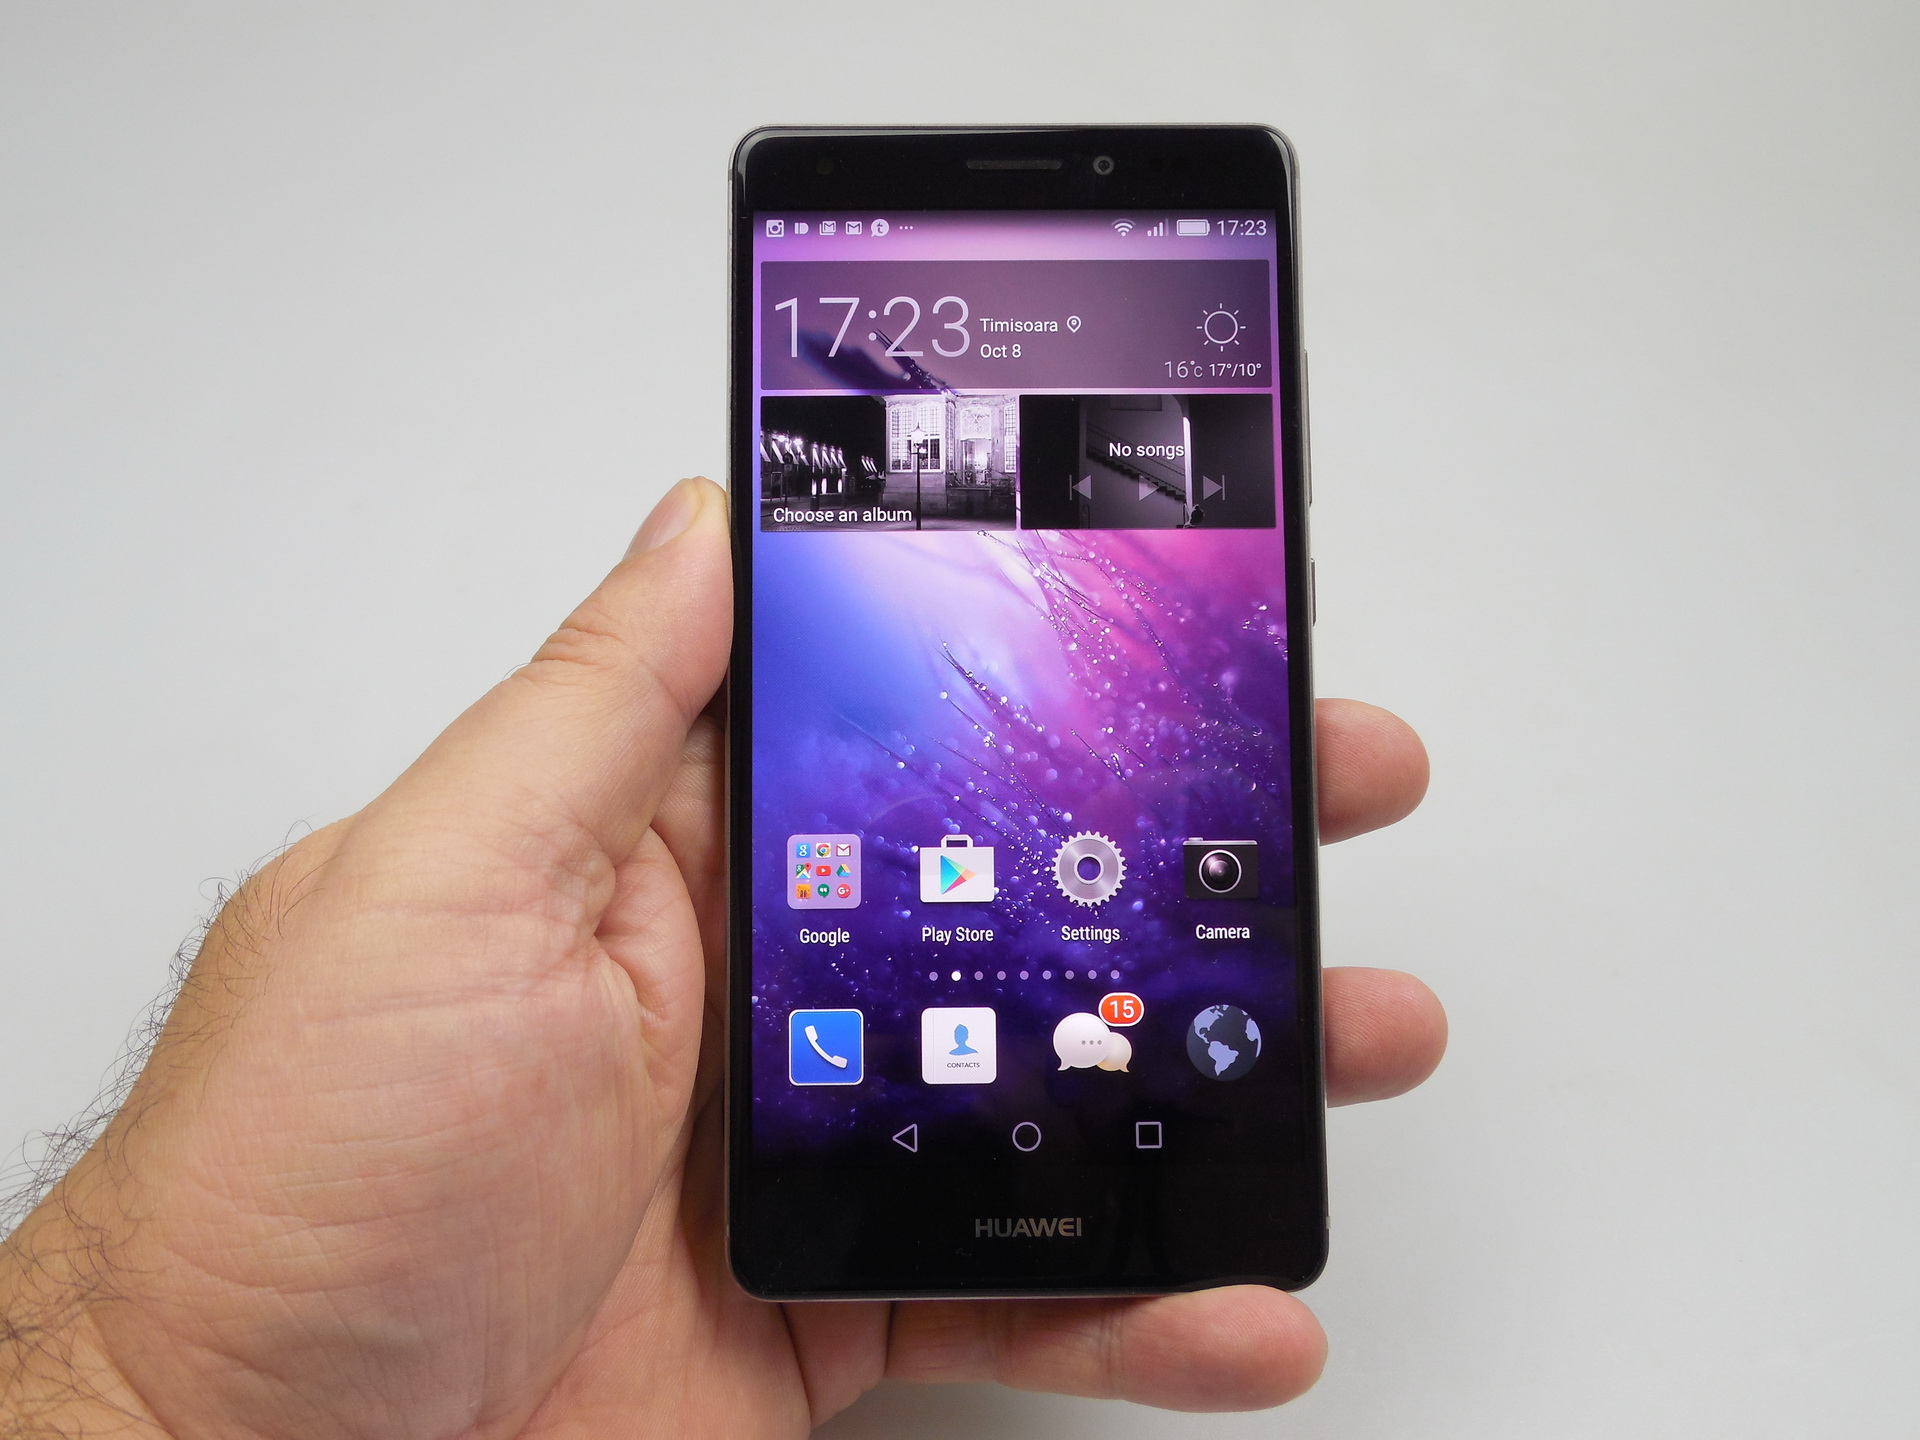 Fun Huawei Mate S Most Ifa 2015 Phone Does A Solid Some Signal Blunders Huawei Mate S Most Ifa 2015 Phone Does A Solid Photo Huawei Mate Se Review Cnet Huawei Mate Se Wifi Calling dpreview Huawei Mate S